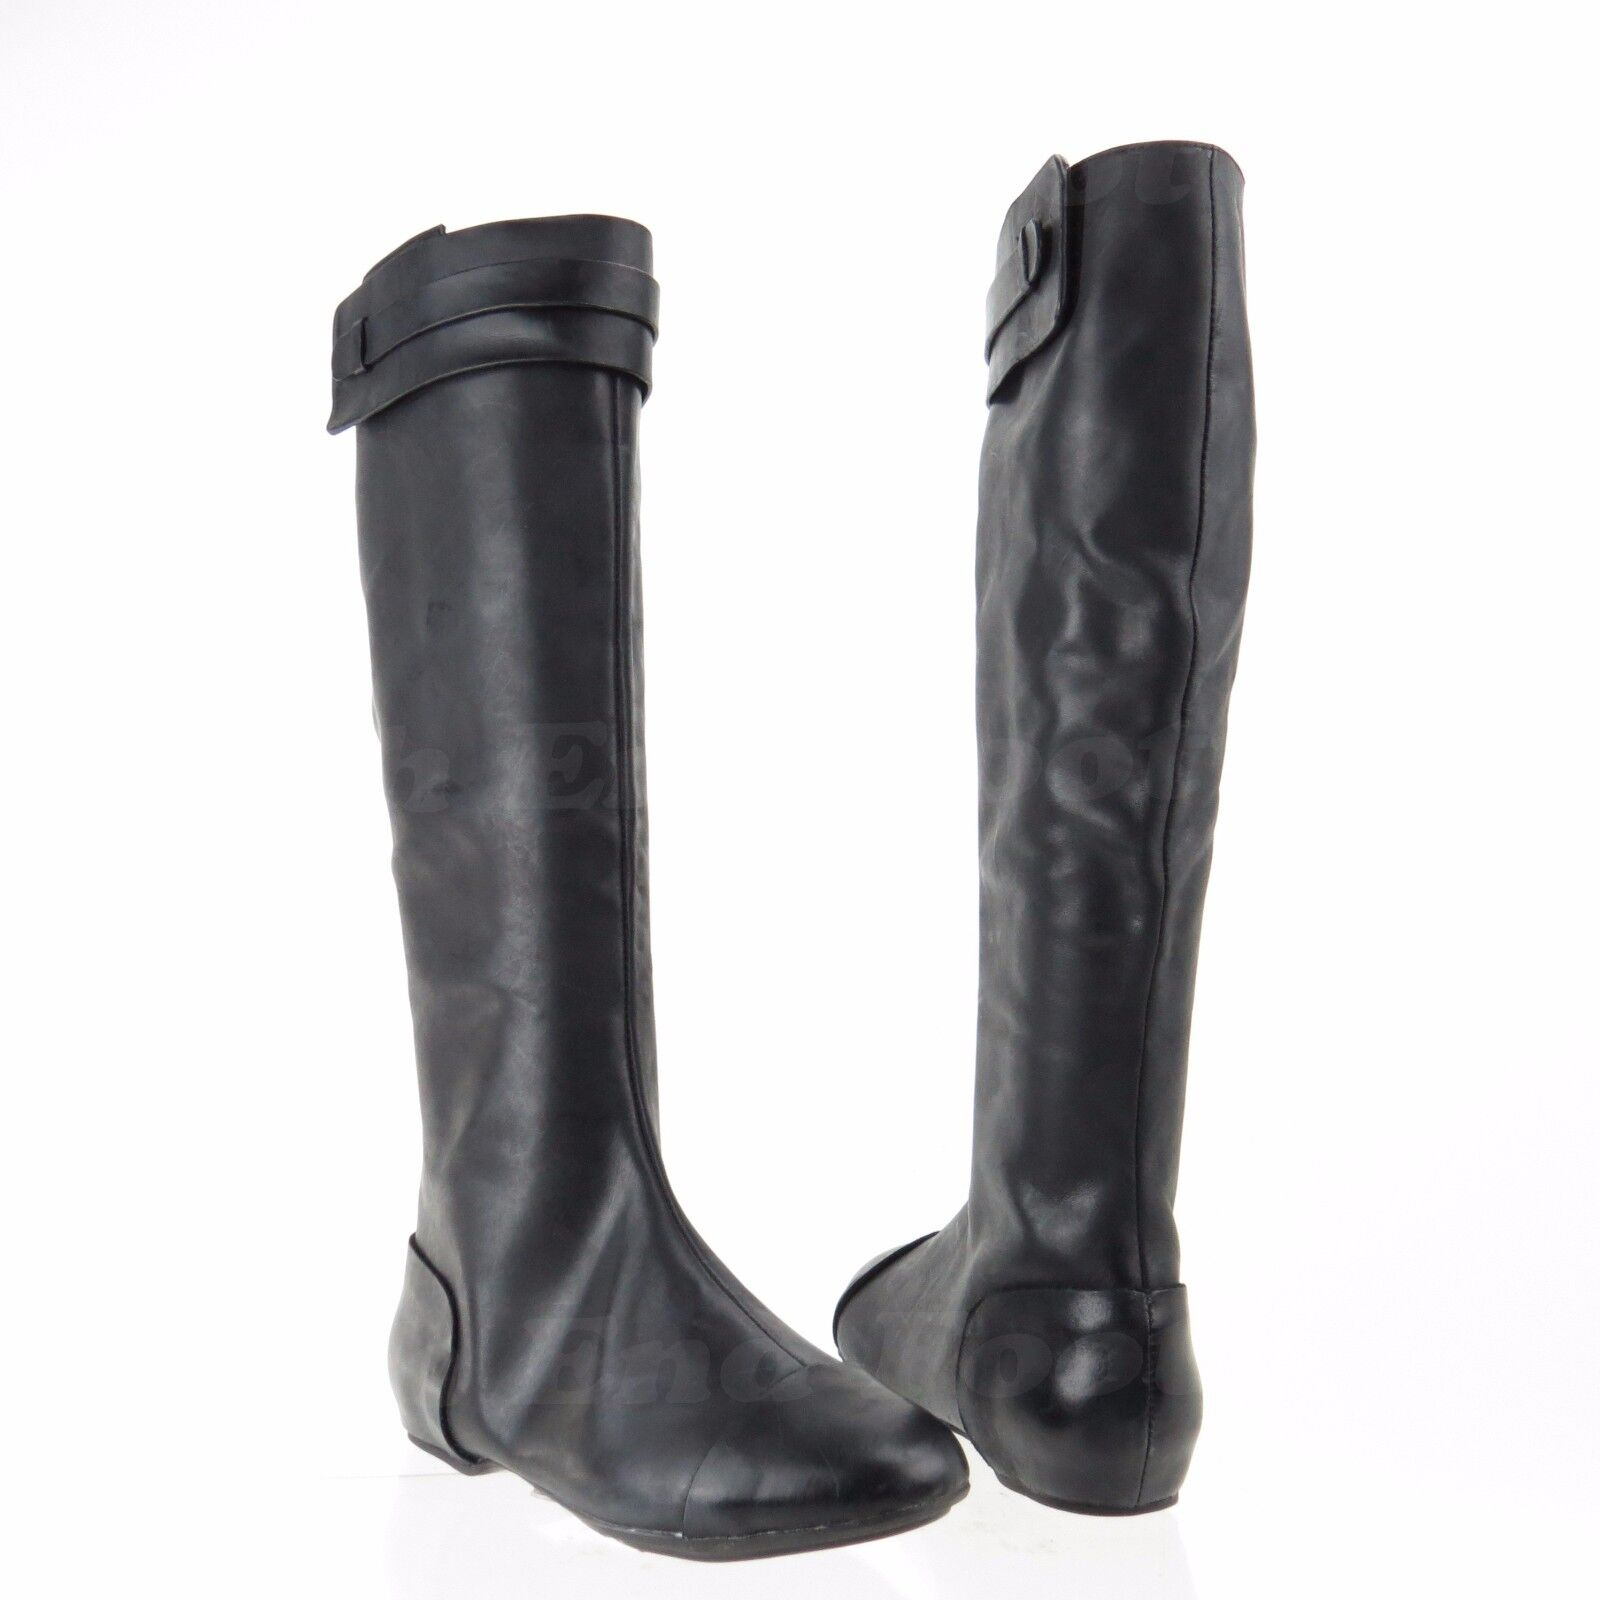 Max Studio Draping Women's shoes Black Leather Tall Boots Sz 6.5 M NEW RTL  378